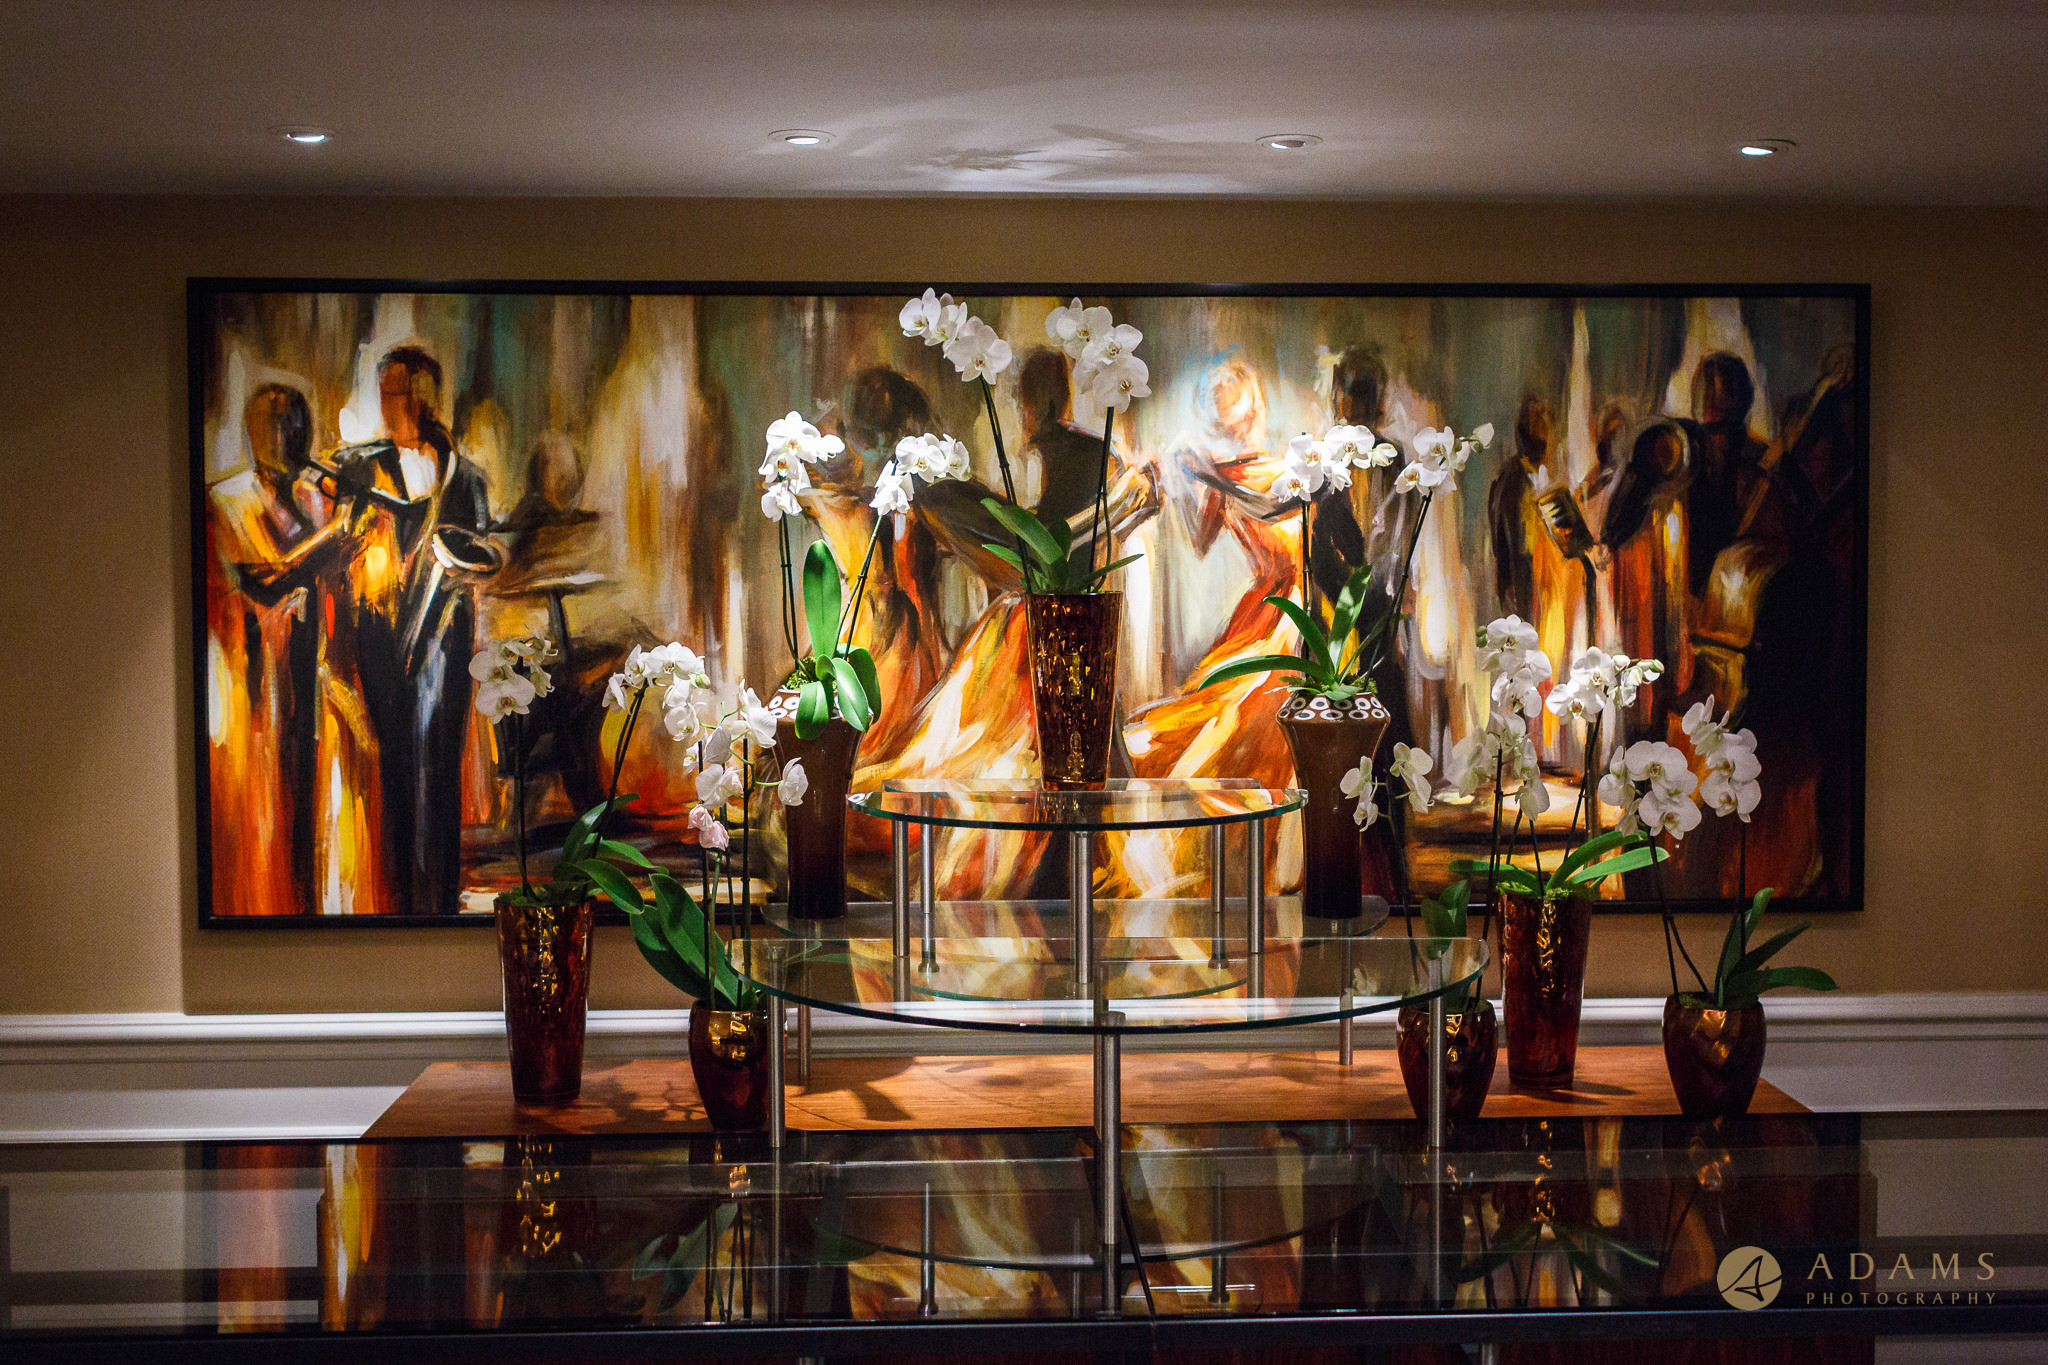 painting in the Langham hotel London